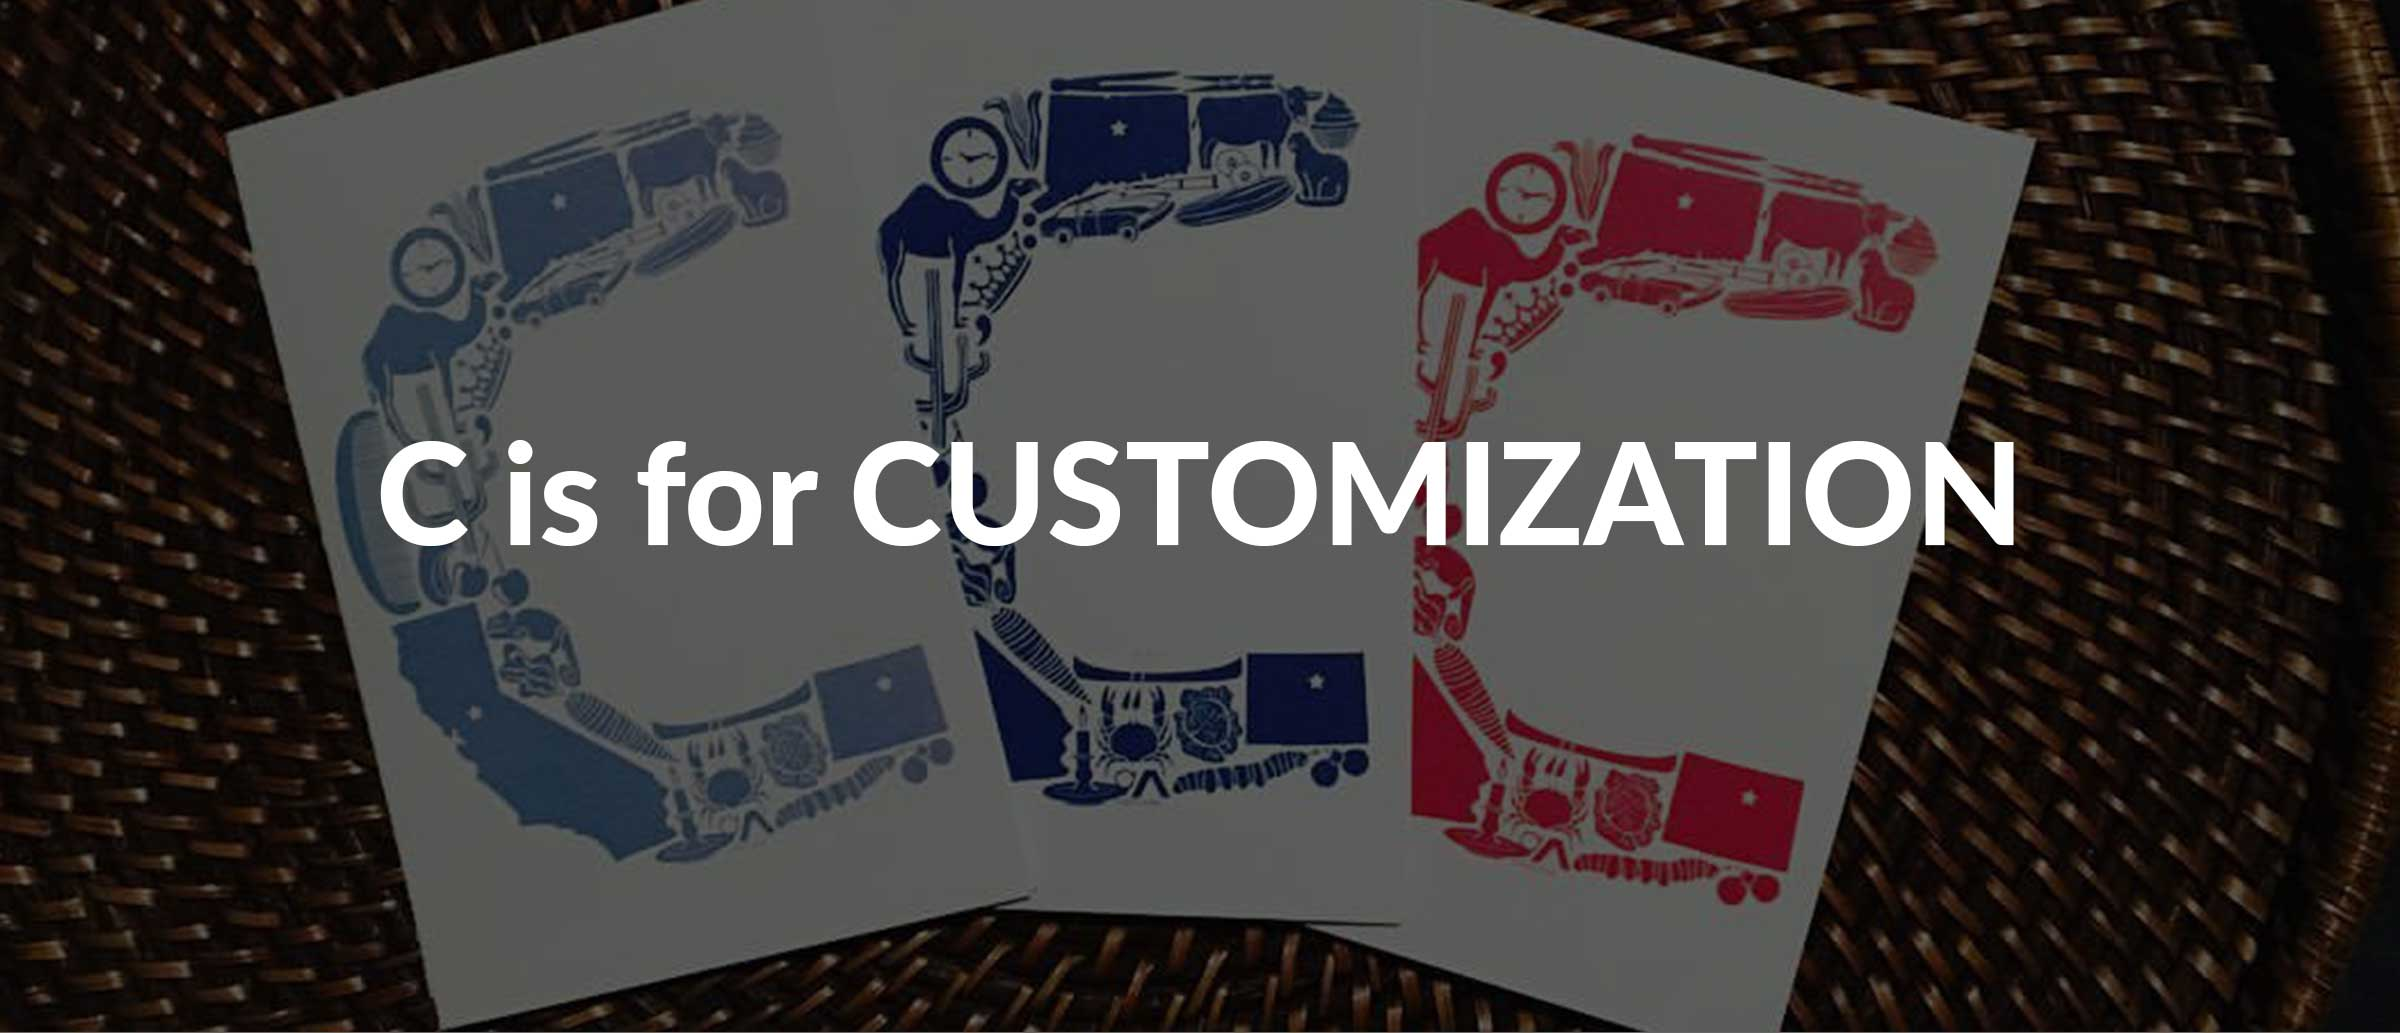 C is for CUSTOMIZATION